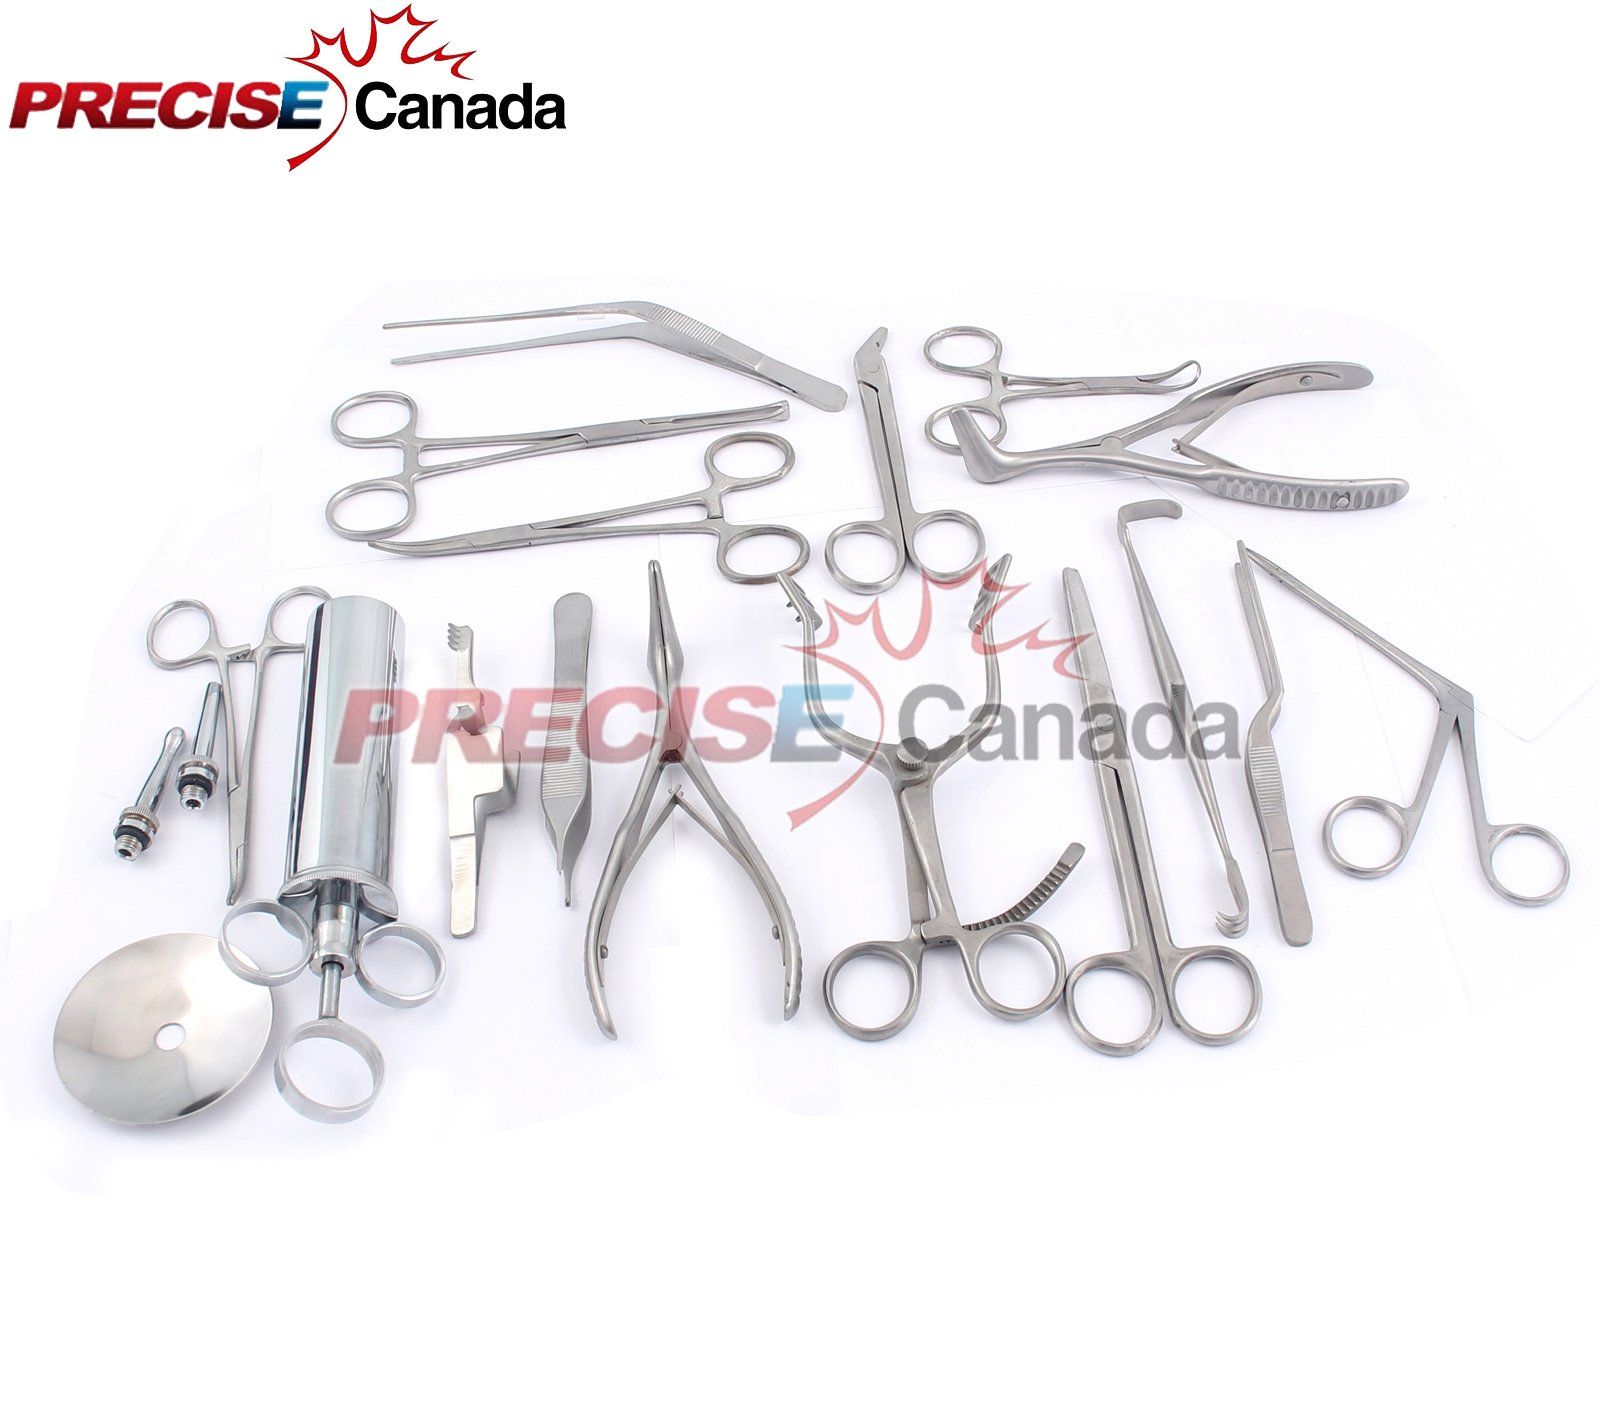 PRECISE CANADA: NEW SET OF 16 PCS ( ENT ) EAR AND NOSE INSTRUMENTS FORCEPS VIENNA NASAL SPECULUM HARTMAN ALLIGATOR ! EAR SYRINGE SCISSORS NEW by PRECISE CANADA